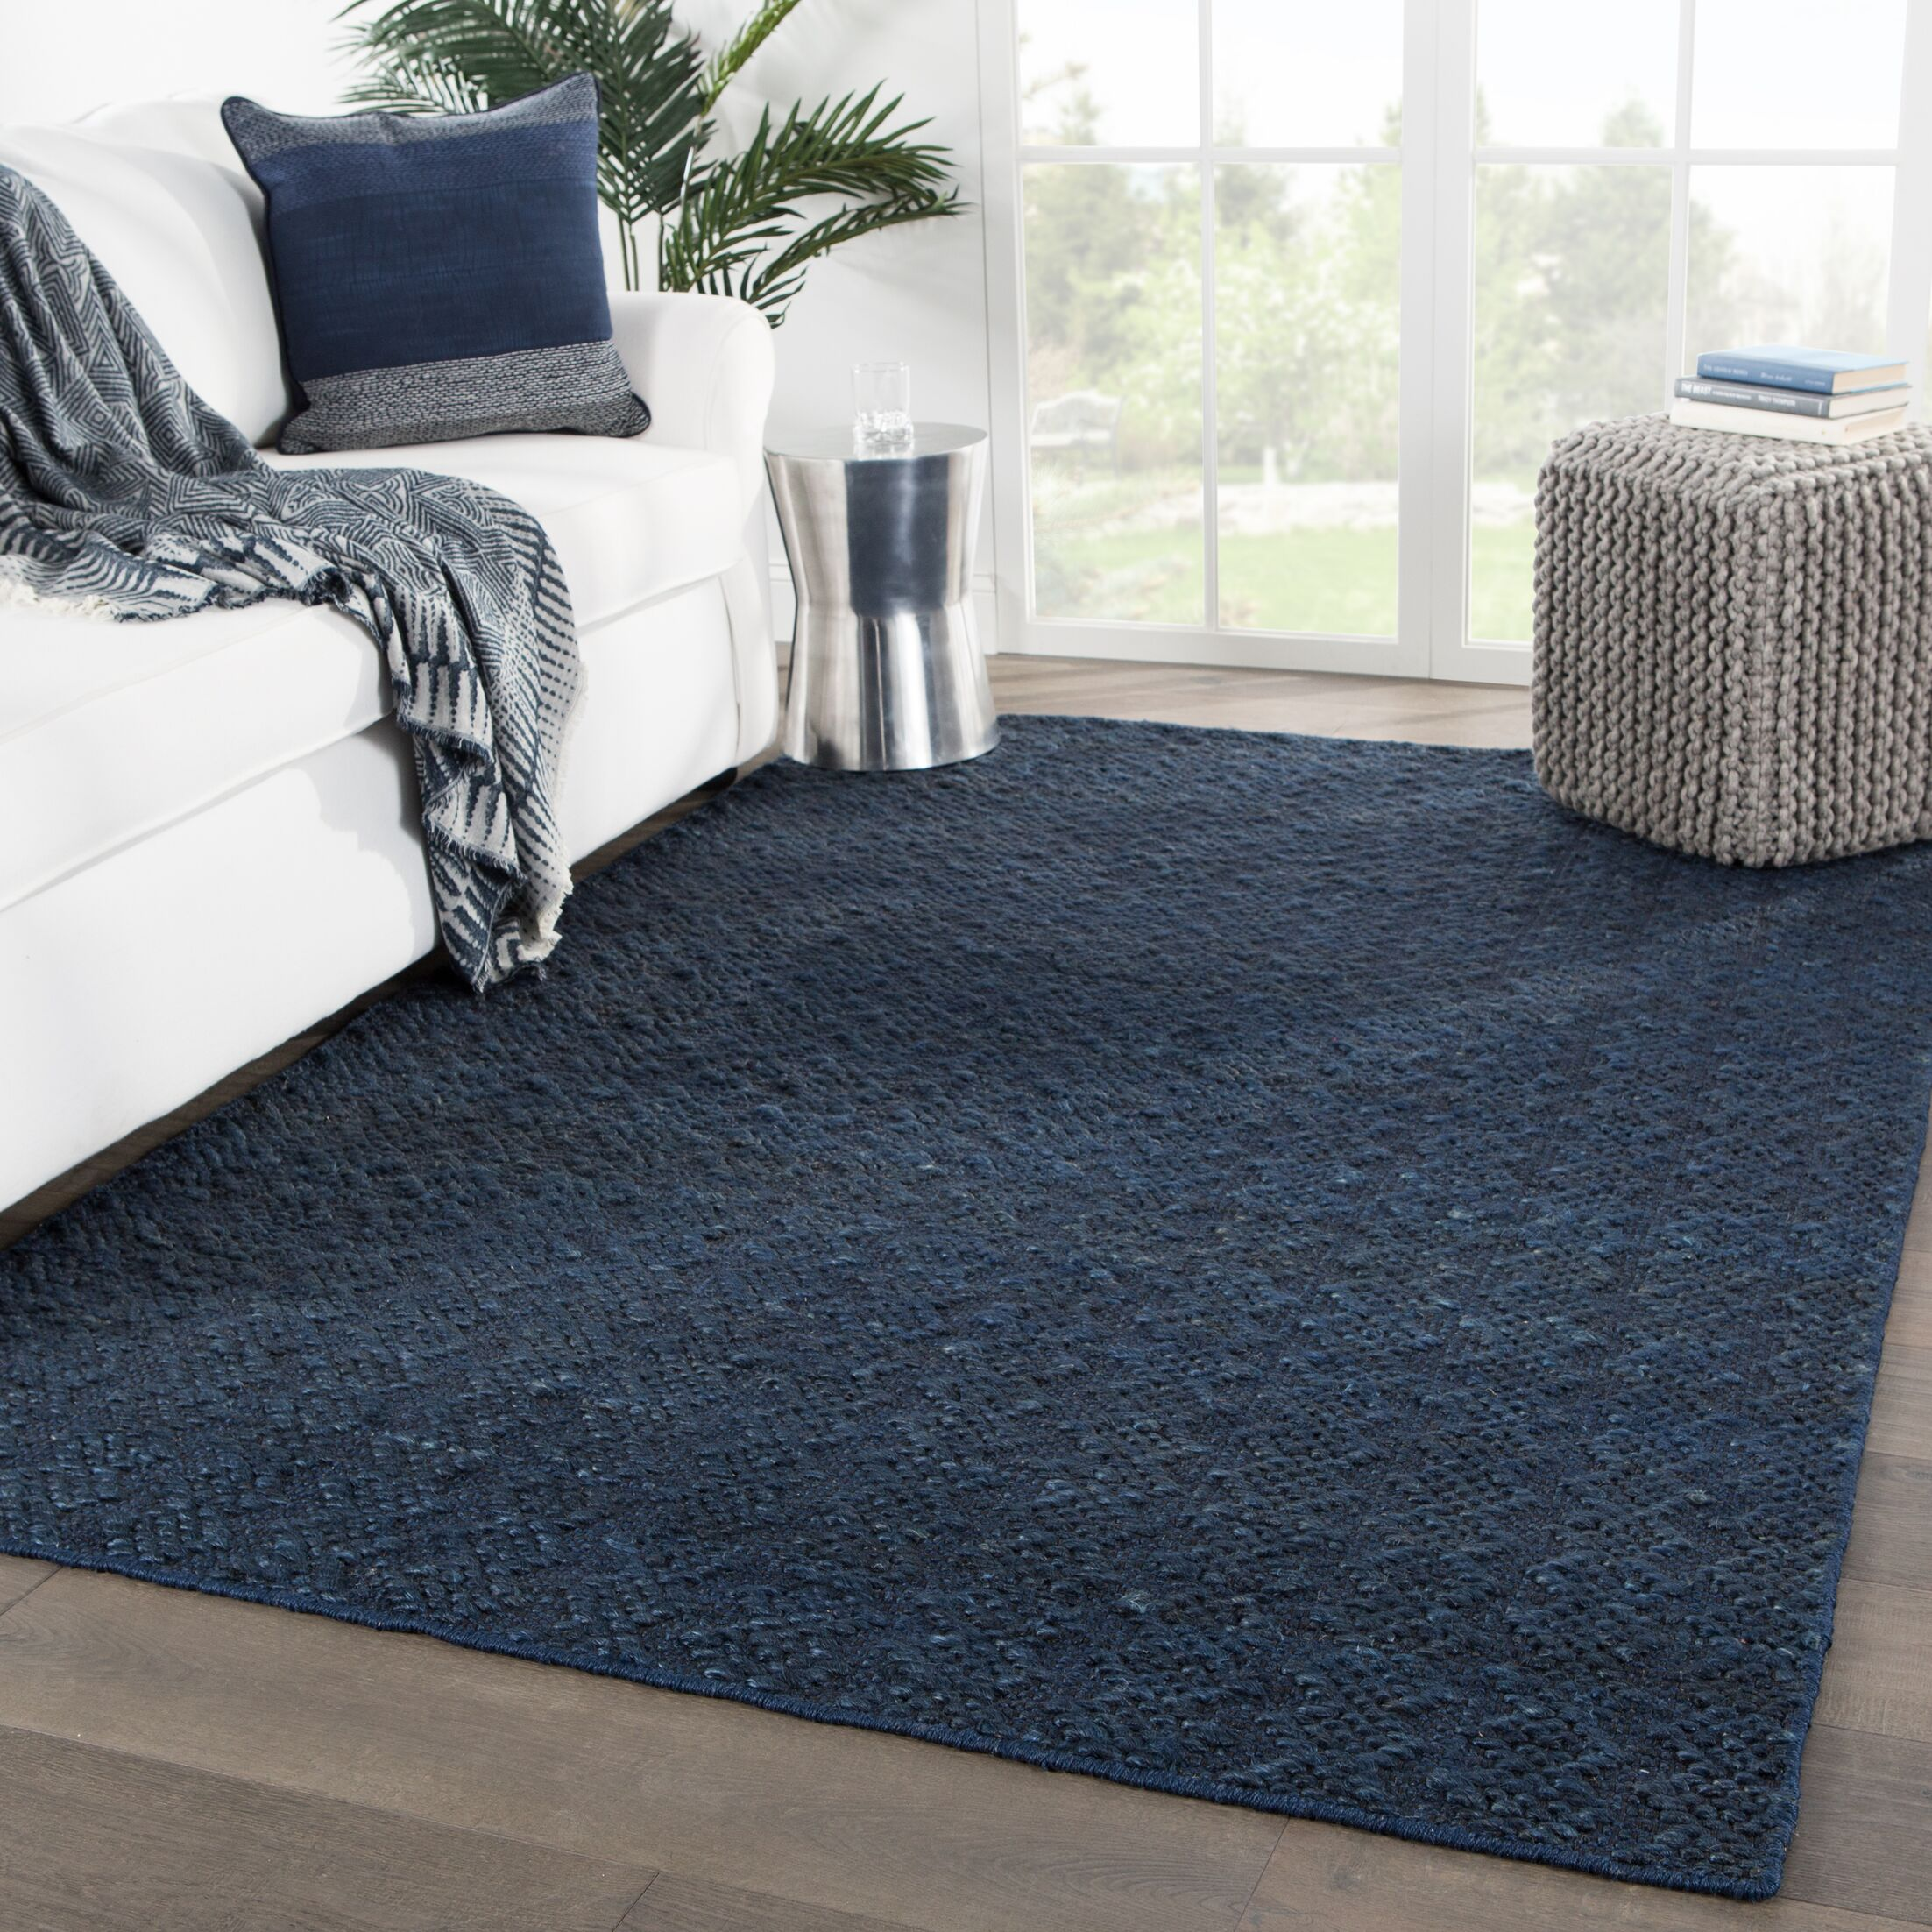 New Fairfield Natural Handwoven Flatweave Blue Area Rug Rug Size: Rectangle 8'10